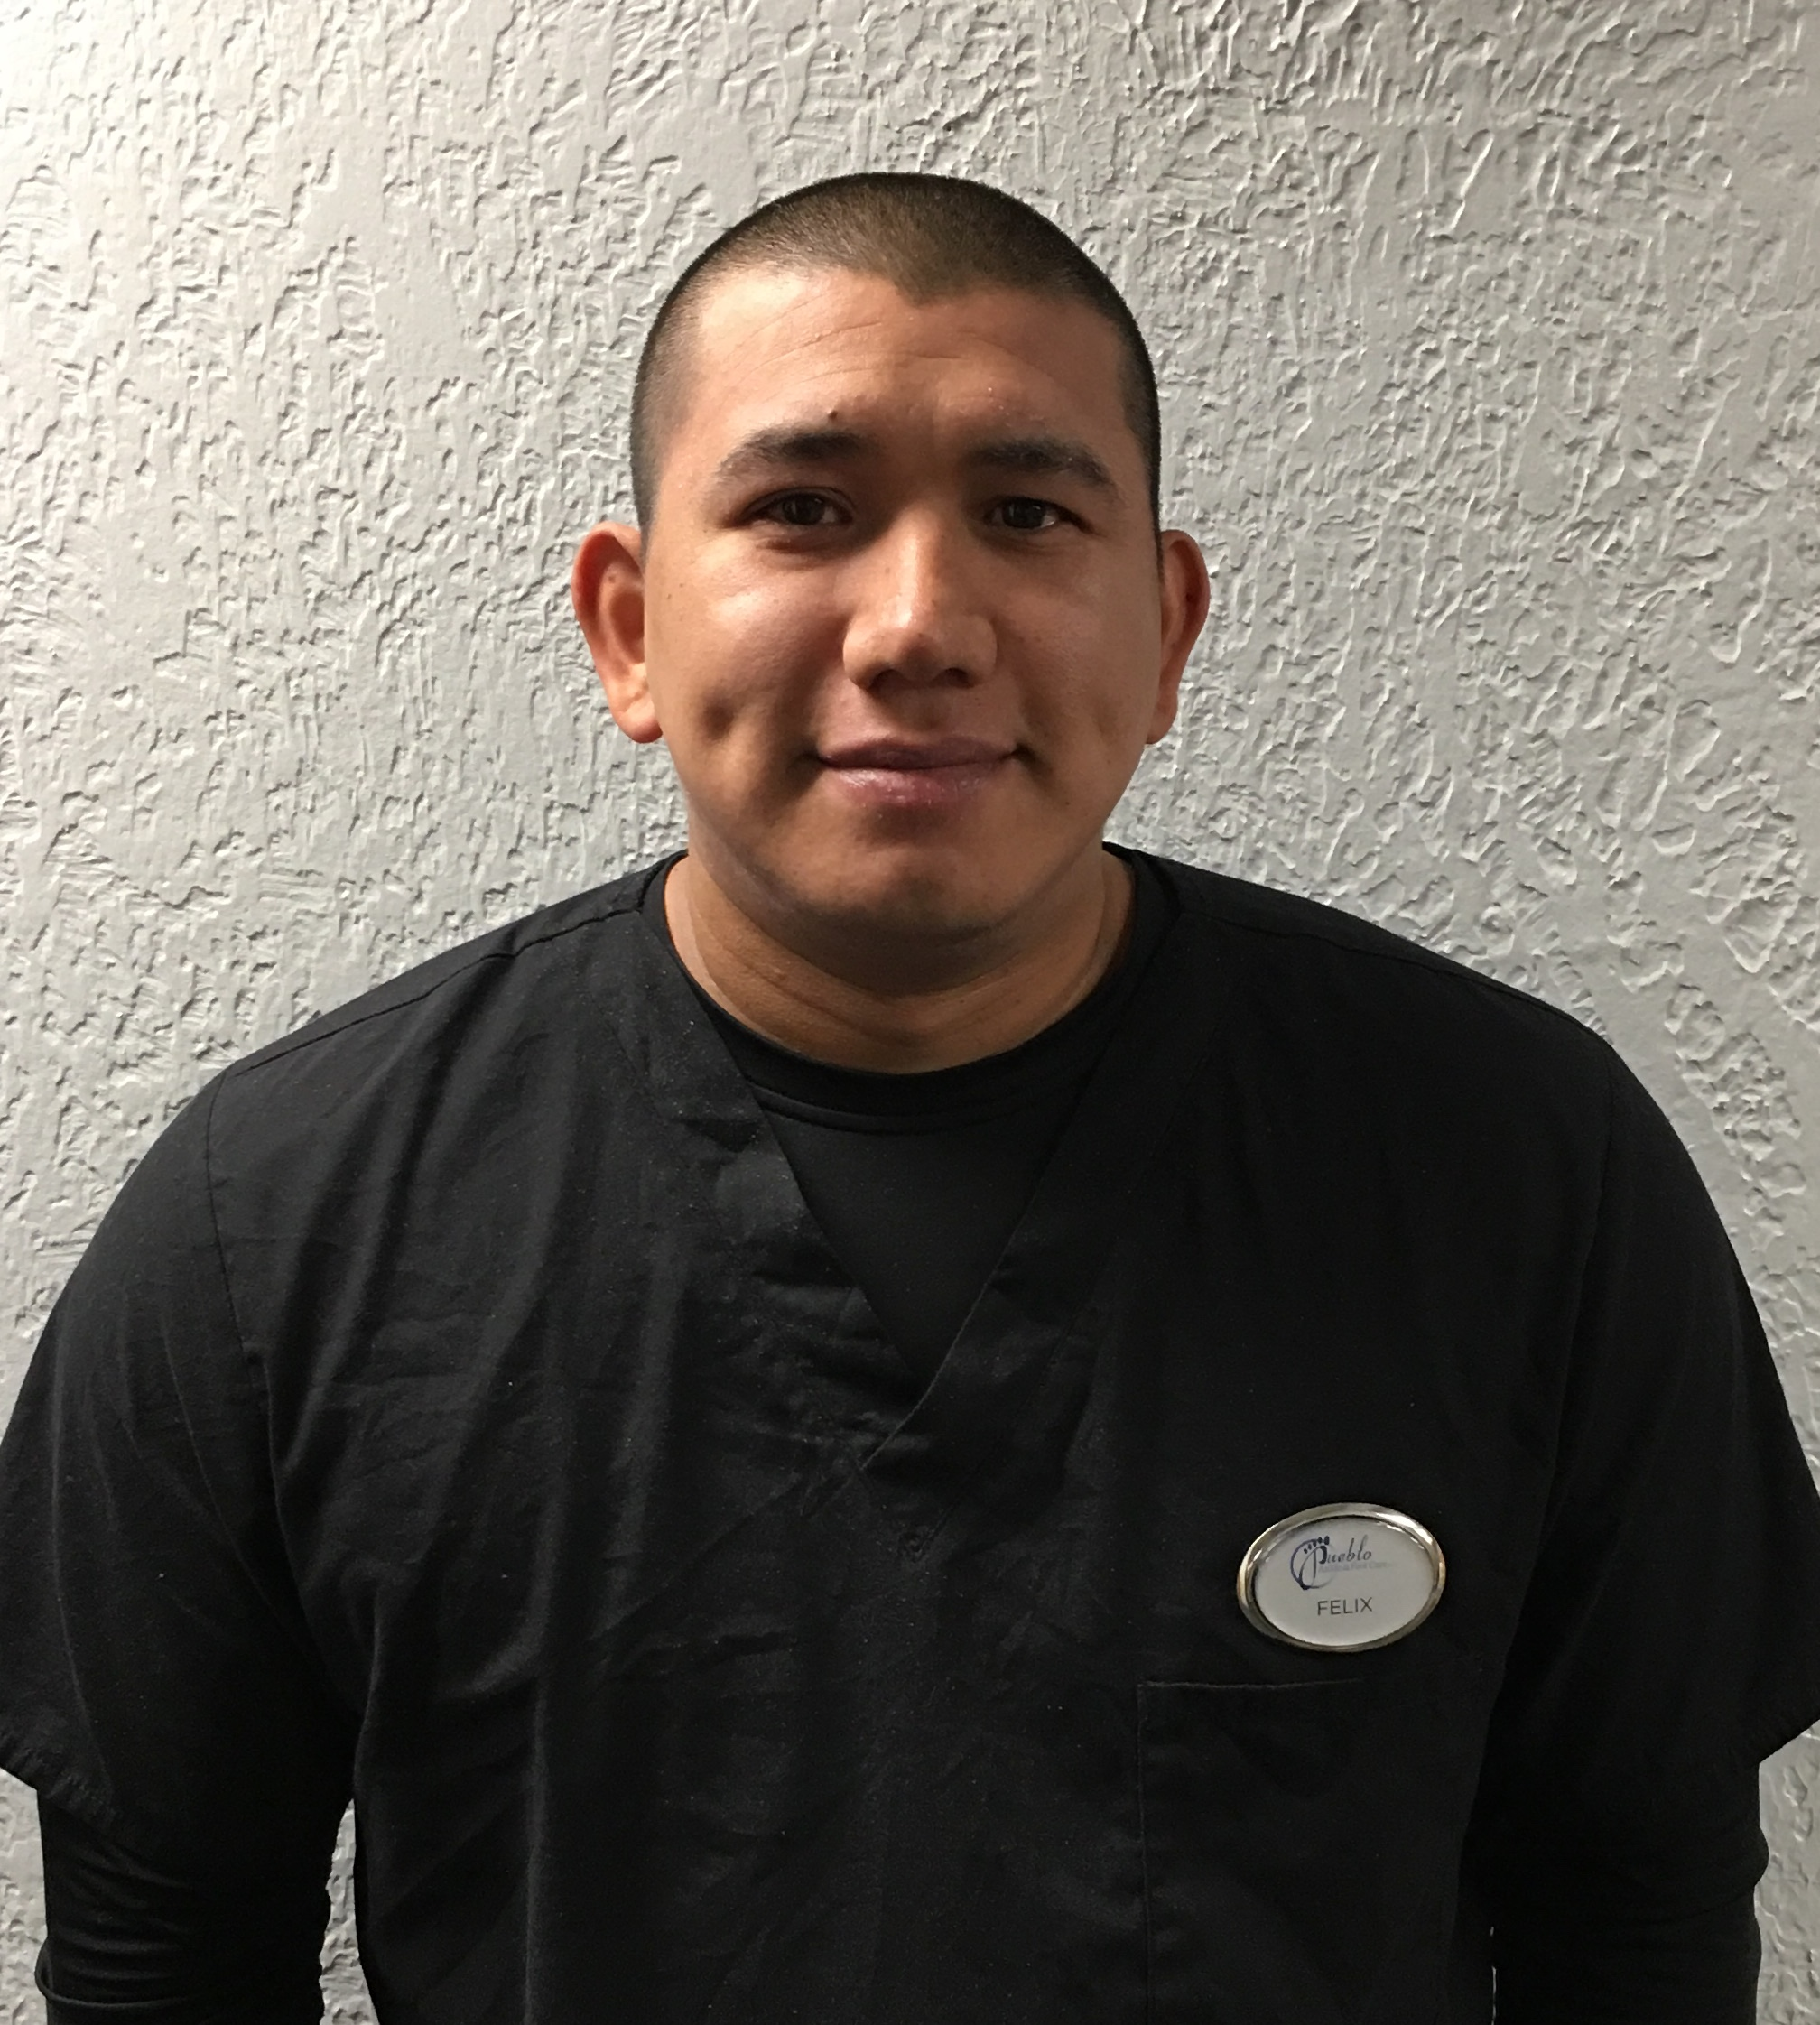 pueblo ankle and foot care staff